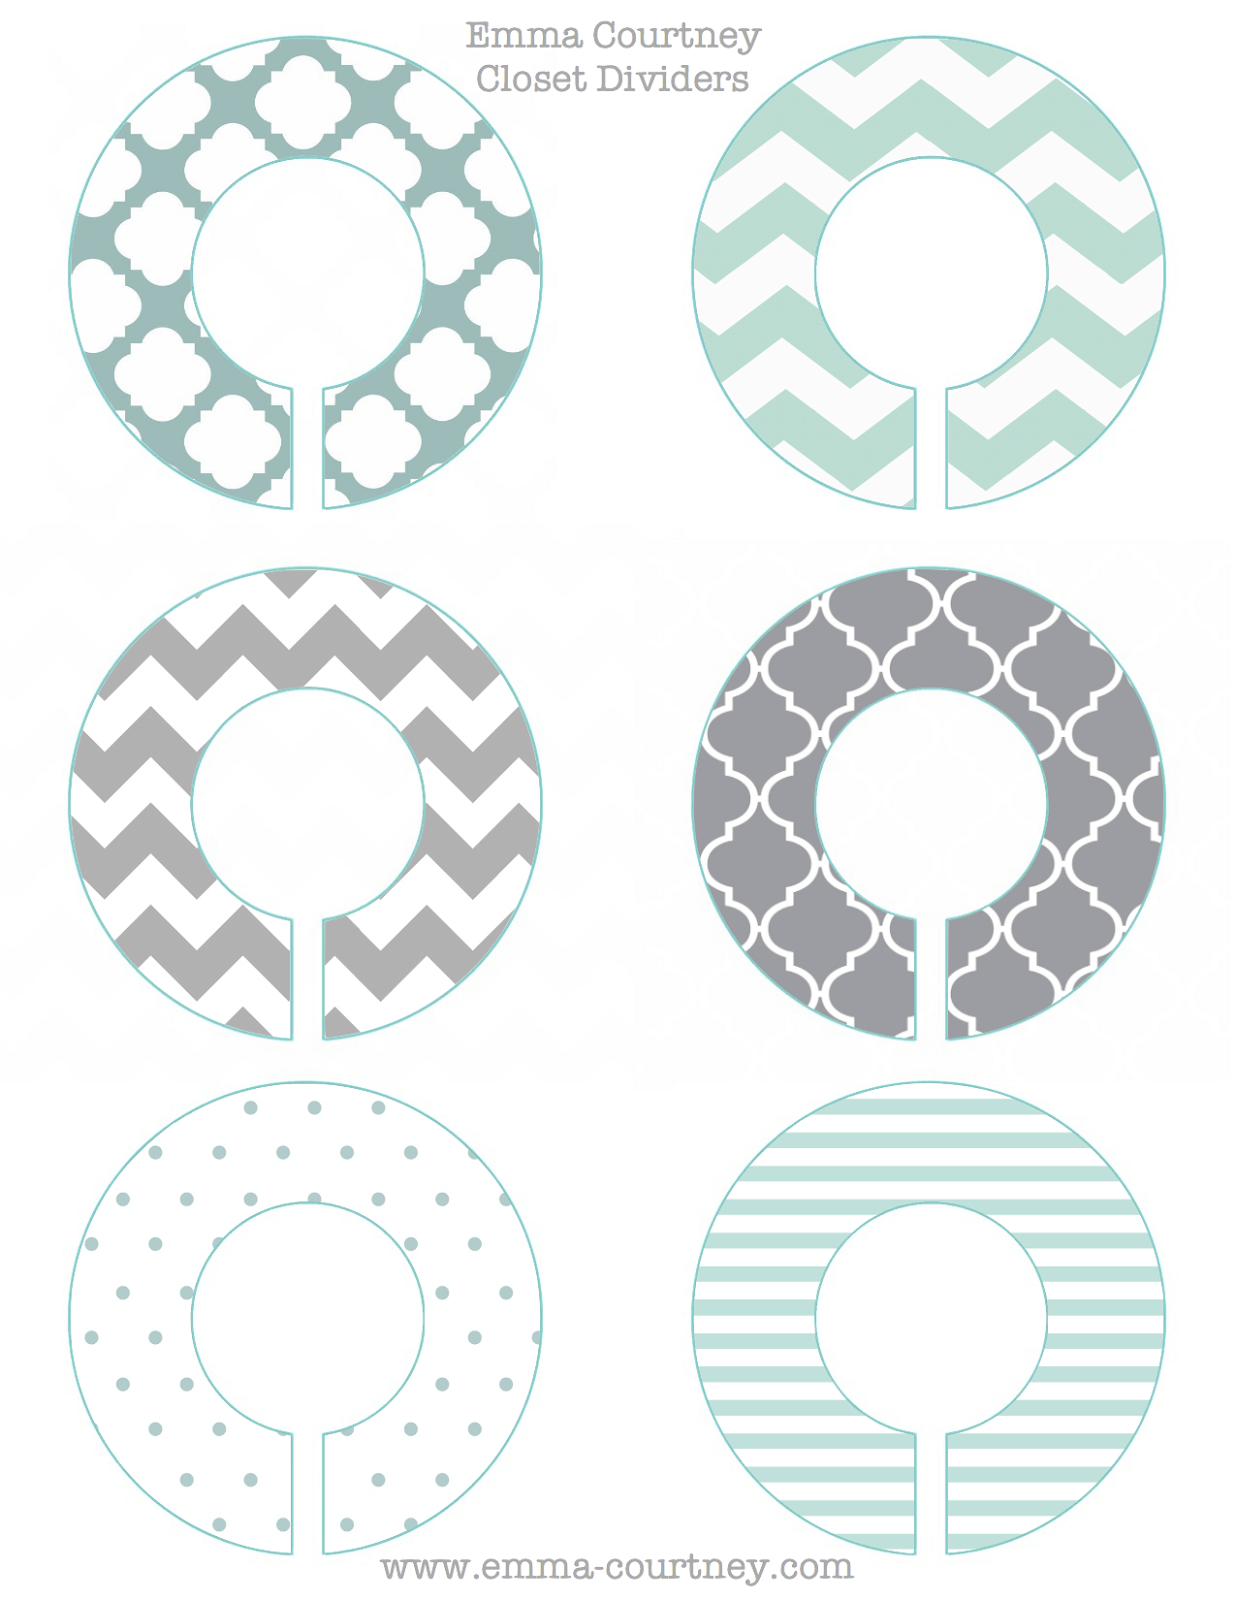 graphic relating to Printable Closet Dividers called Closet Dividers Printable Mommy Youngster Little one closet